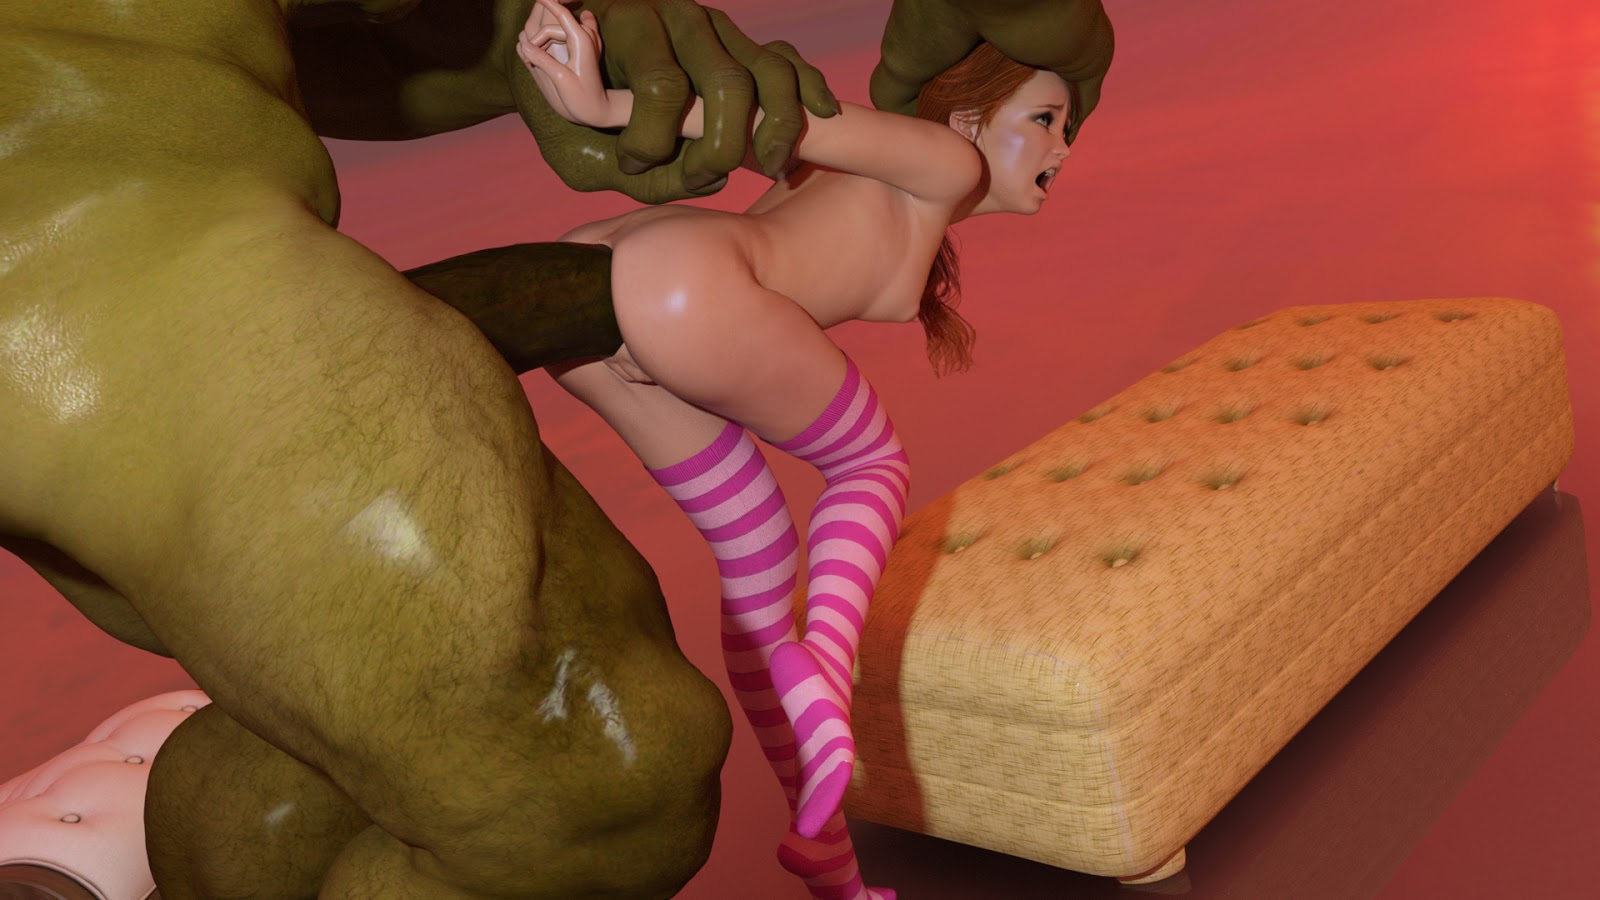 Link to download free 3d porn videos hentia comic